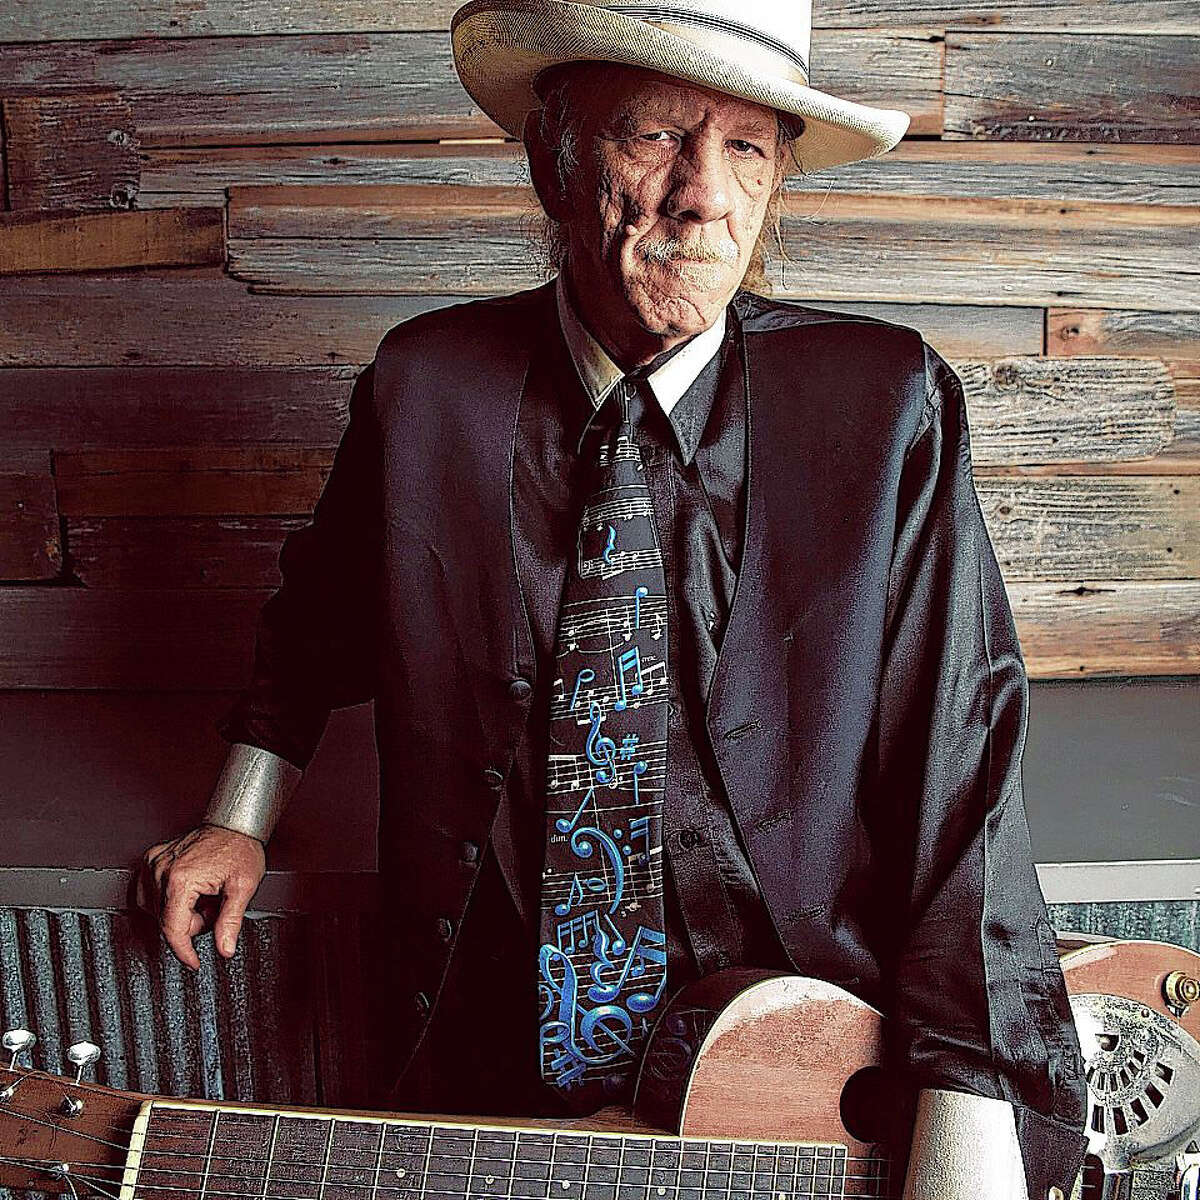 Blues musician Watermelon Slim will be in concert Friday as part of Jacksonville Main Street's Downtown Concert Series.